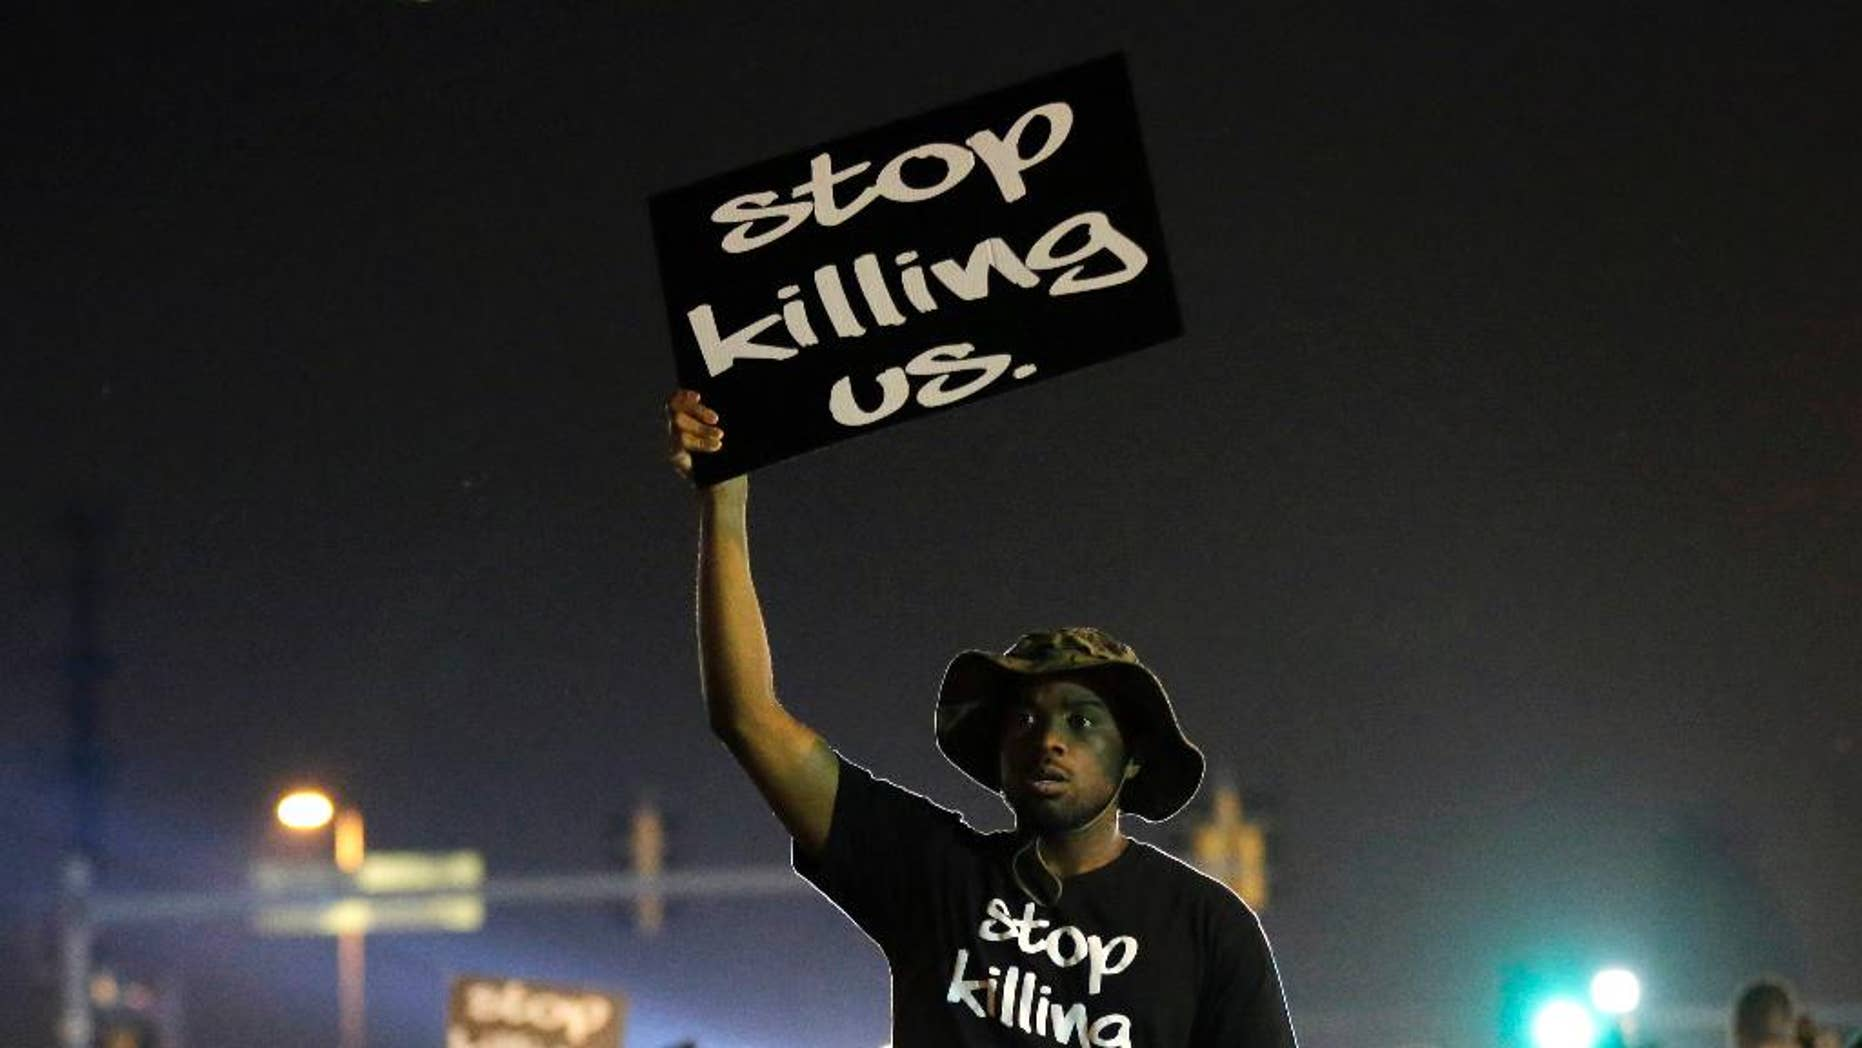 FILE - In this Aug. 18, 2014, file photo, protesters walk through the streets after a standoff with police in Ferguson, Mo. A year ago, most Americans had never heard of the St. Louis suburb called Ferguson. But after a white police officer fatally shot a black 18-year-old in the street, the name of the middle-class community quickly became known around the world. (AP Photo/Charlie Riedel, File)